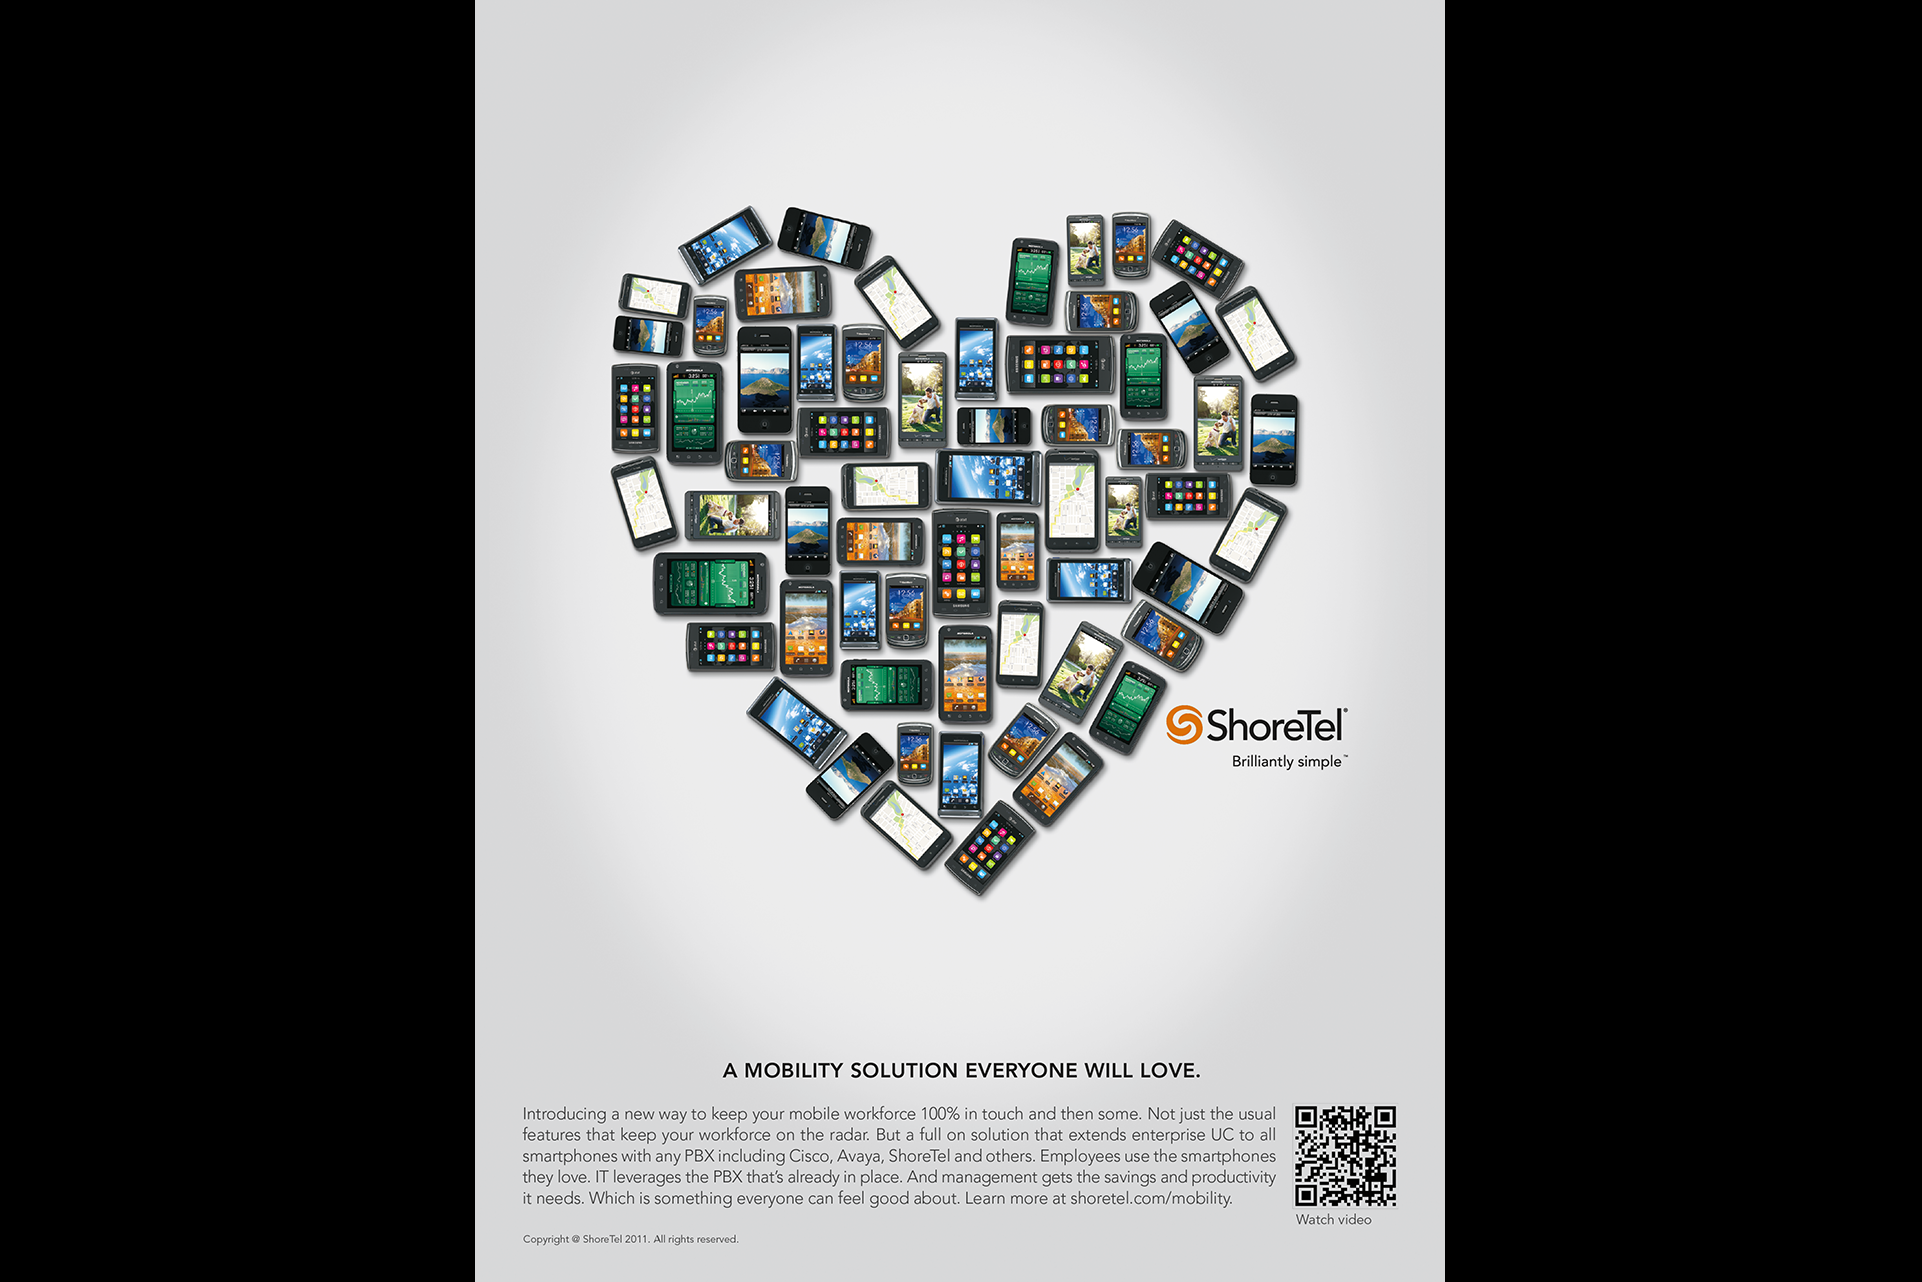 ShoreTel Heart Ad